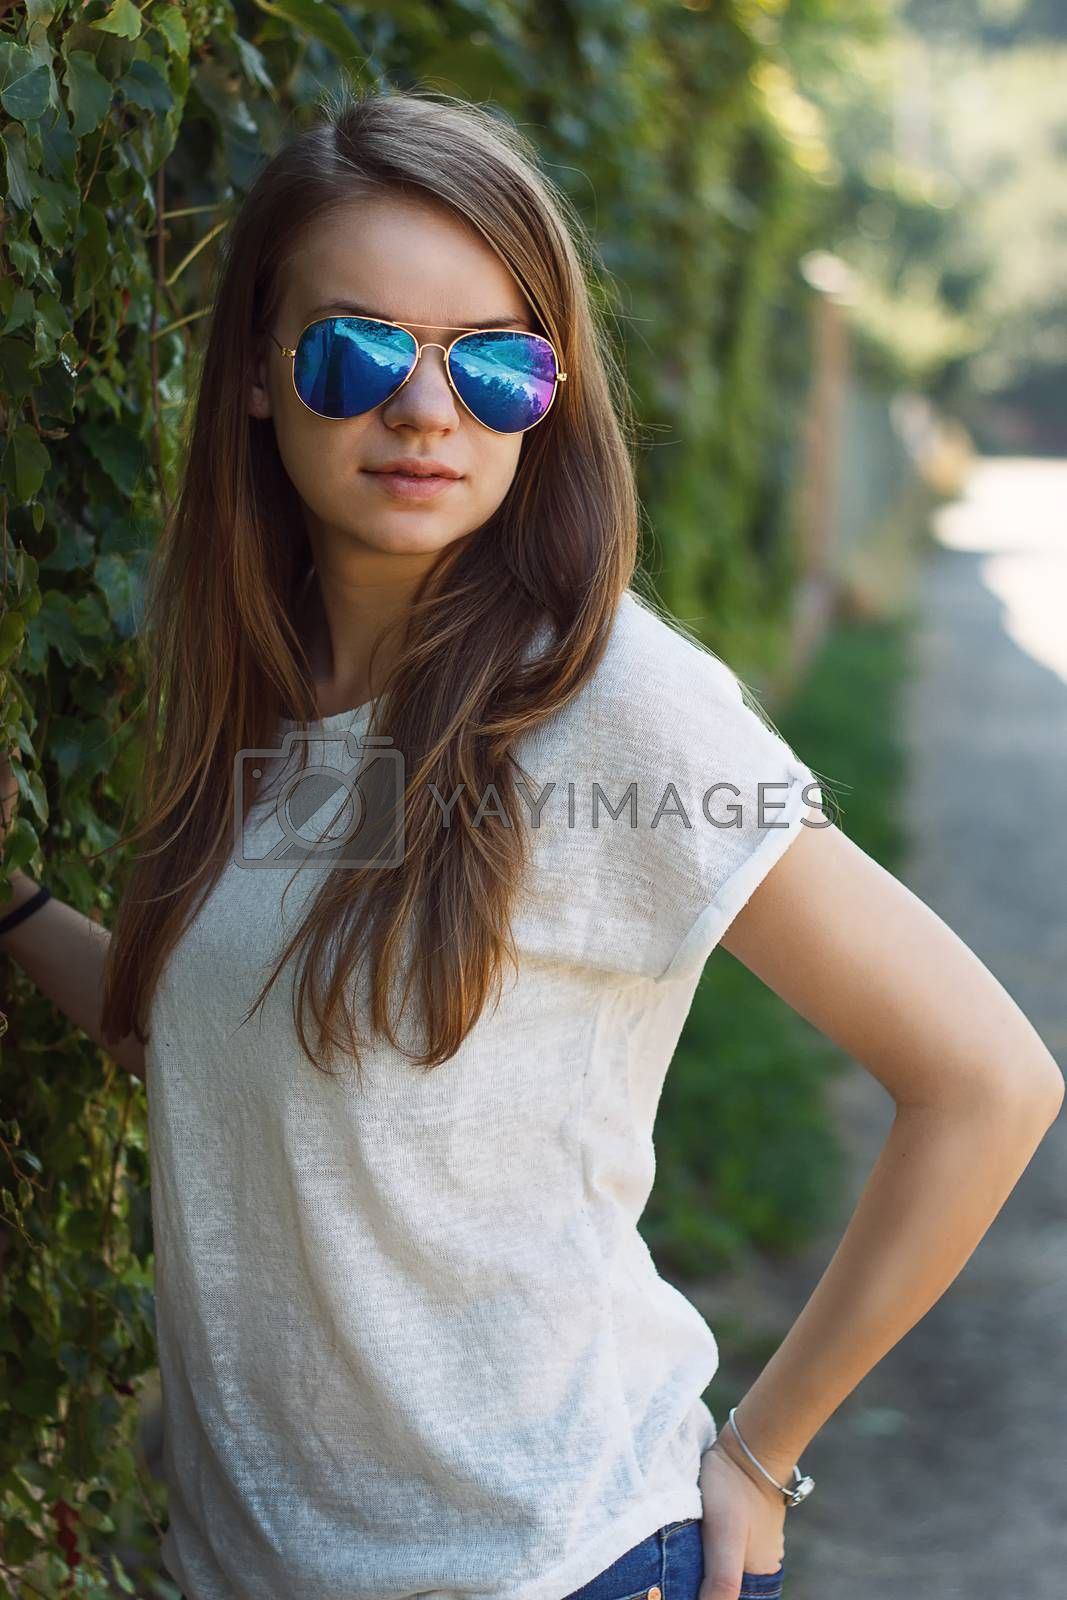 Royalty free image of Beautiful smiling girl in white blouse by victosha